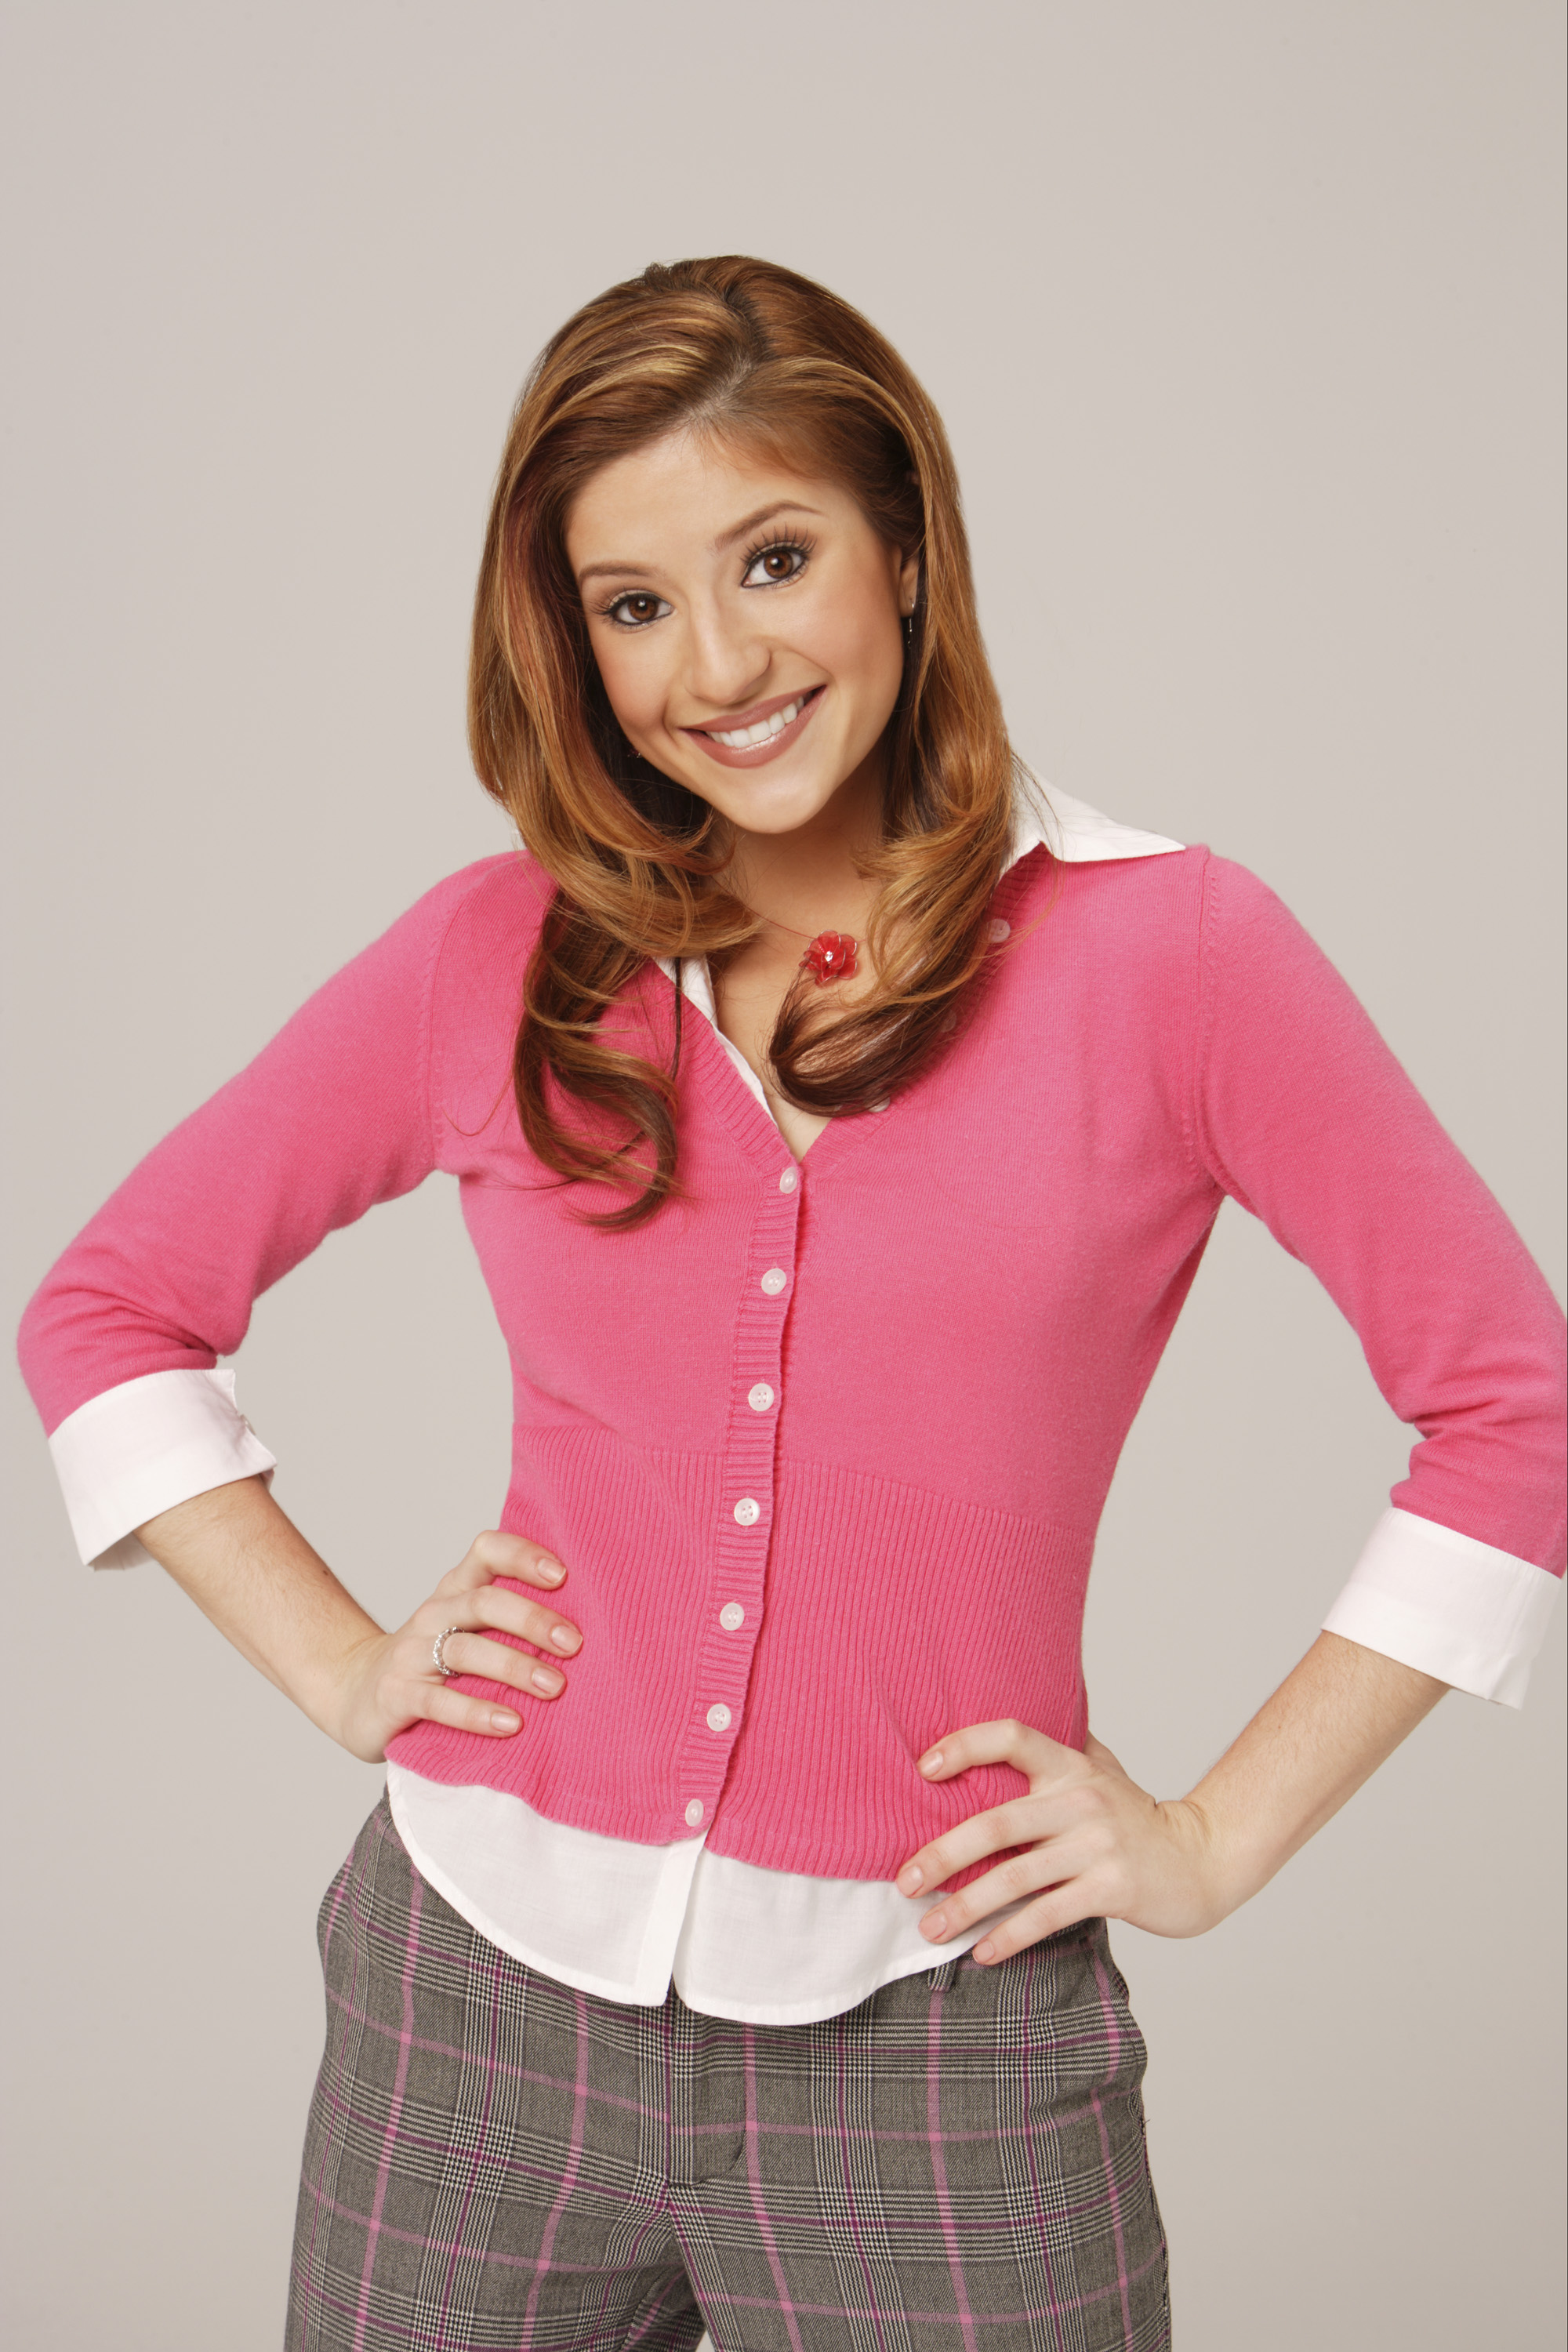 Image result for Anneliese Van Der Pol thats so raven